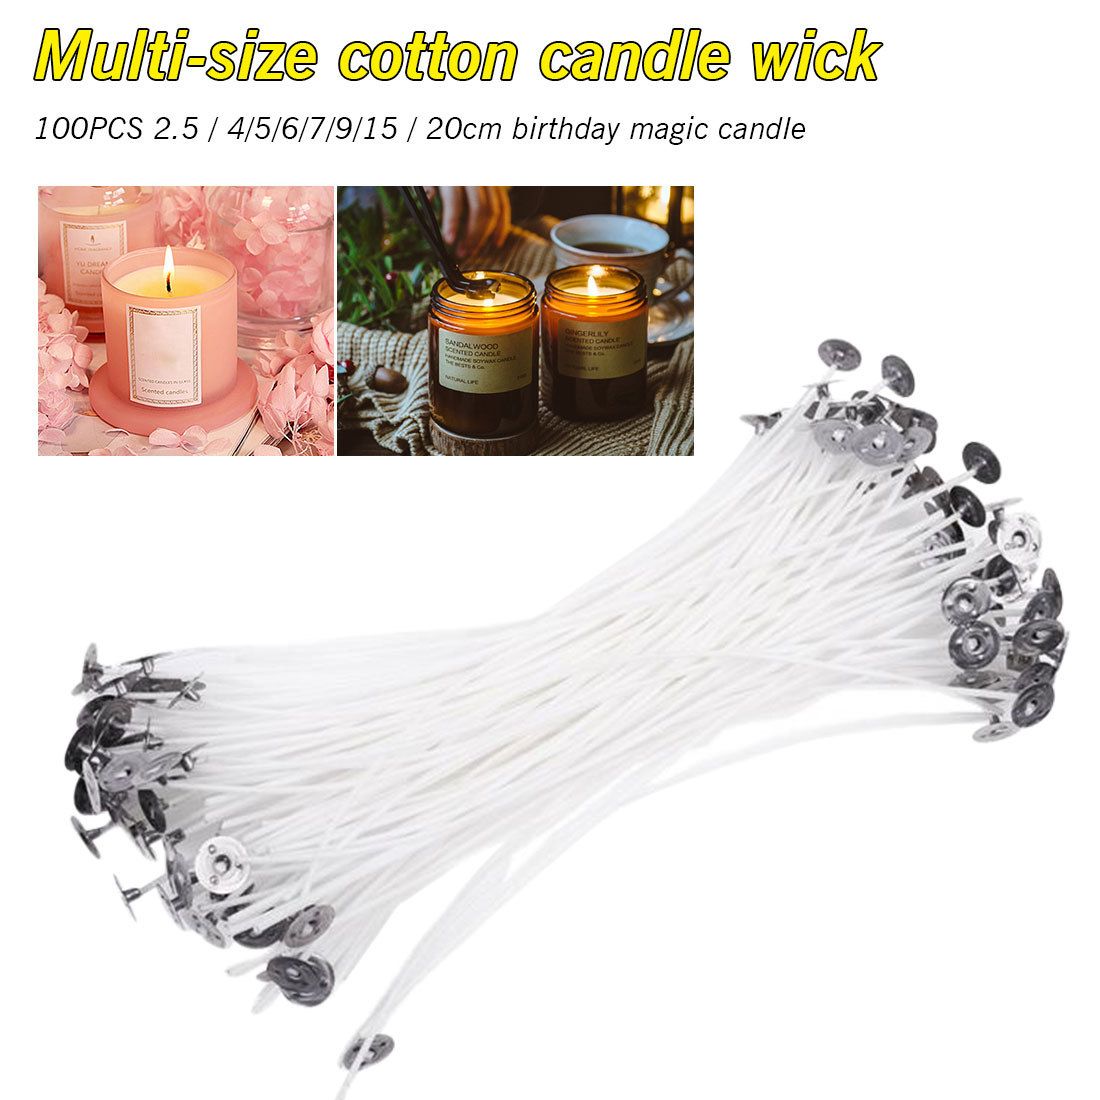 40 x 5cm 50mm Pre Waxed Wicks For Candle Making with Sustainers HIGH QUALITY